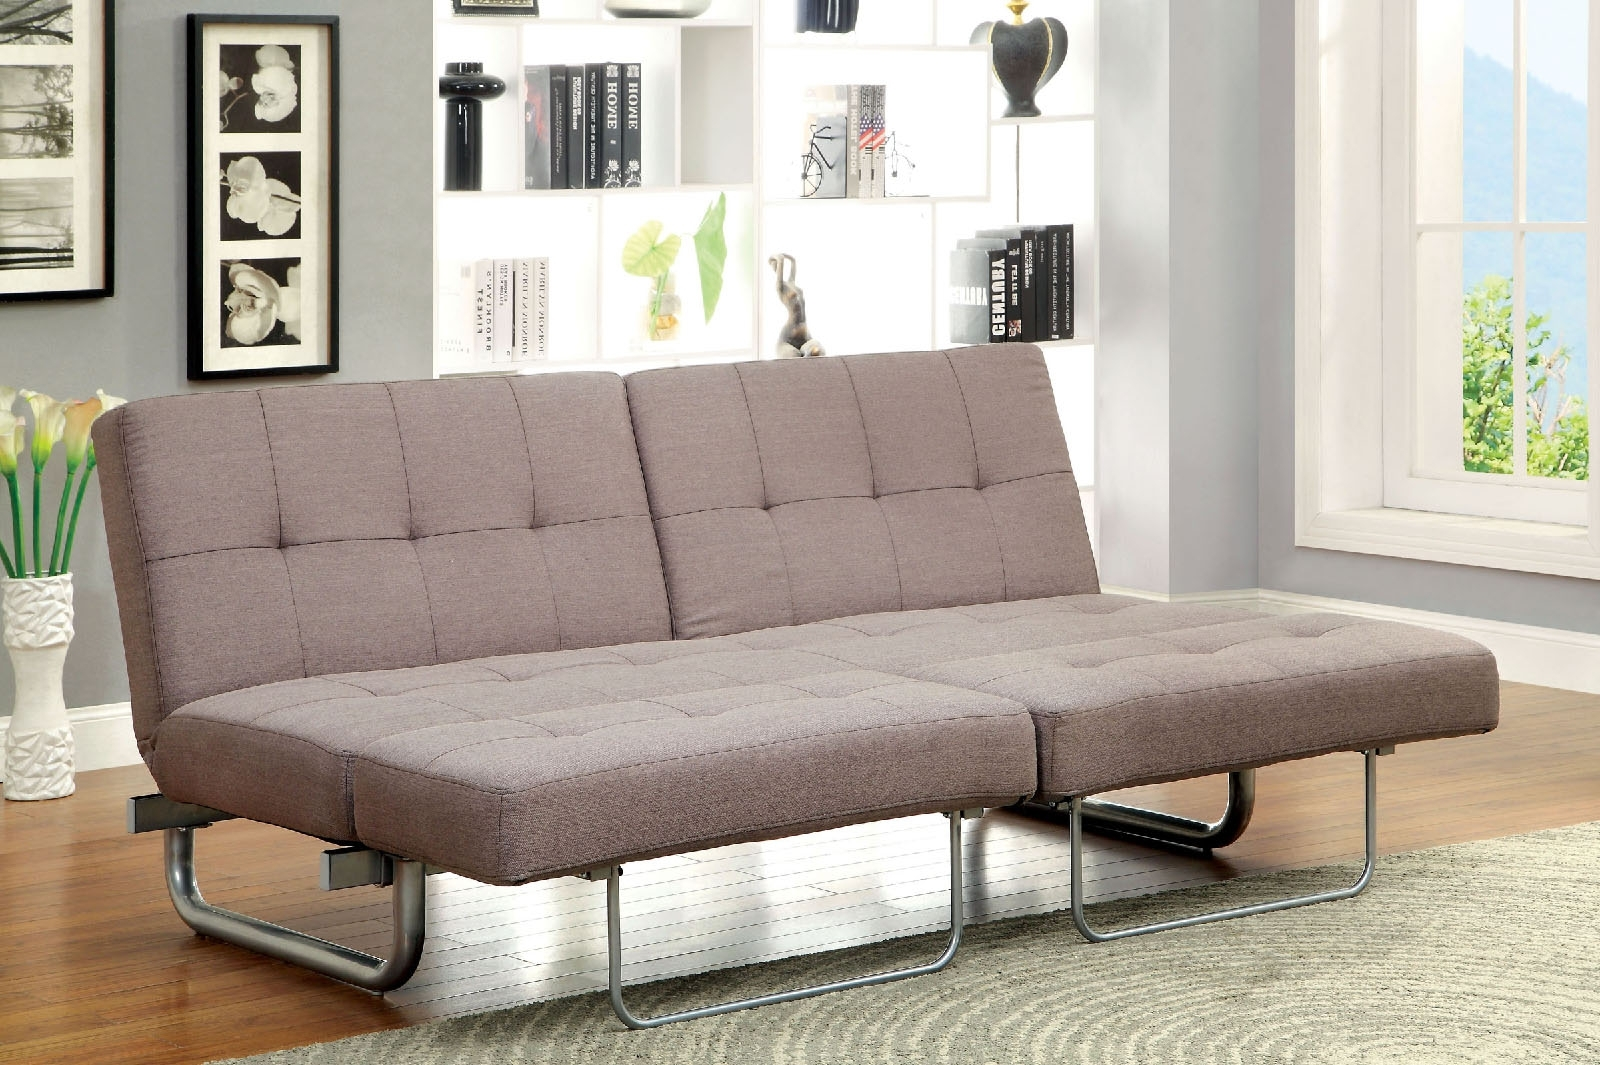 Most Popular Furniture : Furniture Warehouse Dallas Tx French Connection Zinc Regarding Jonesboro Ar Sectional Sofas (Gallery 1 of 20)